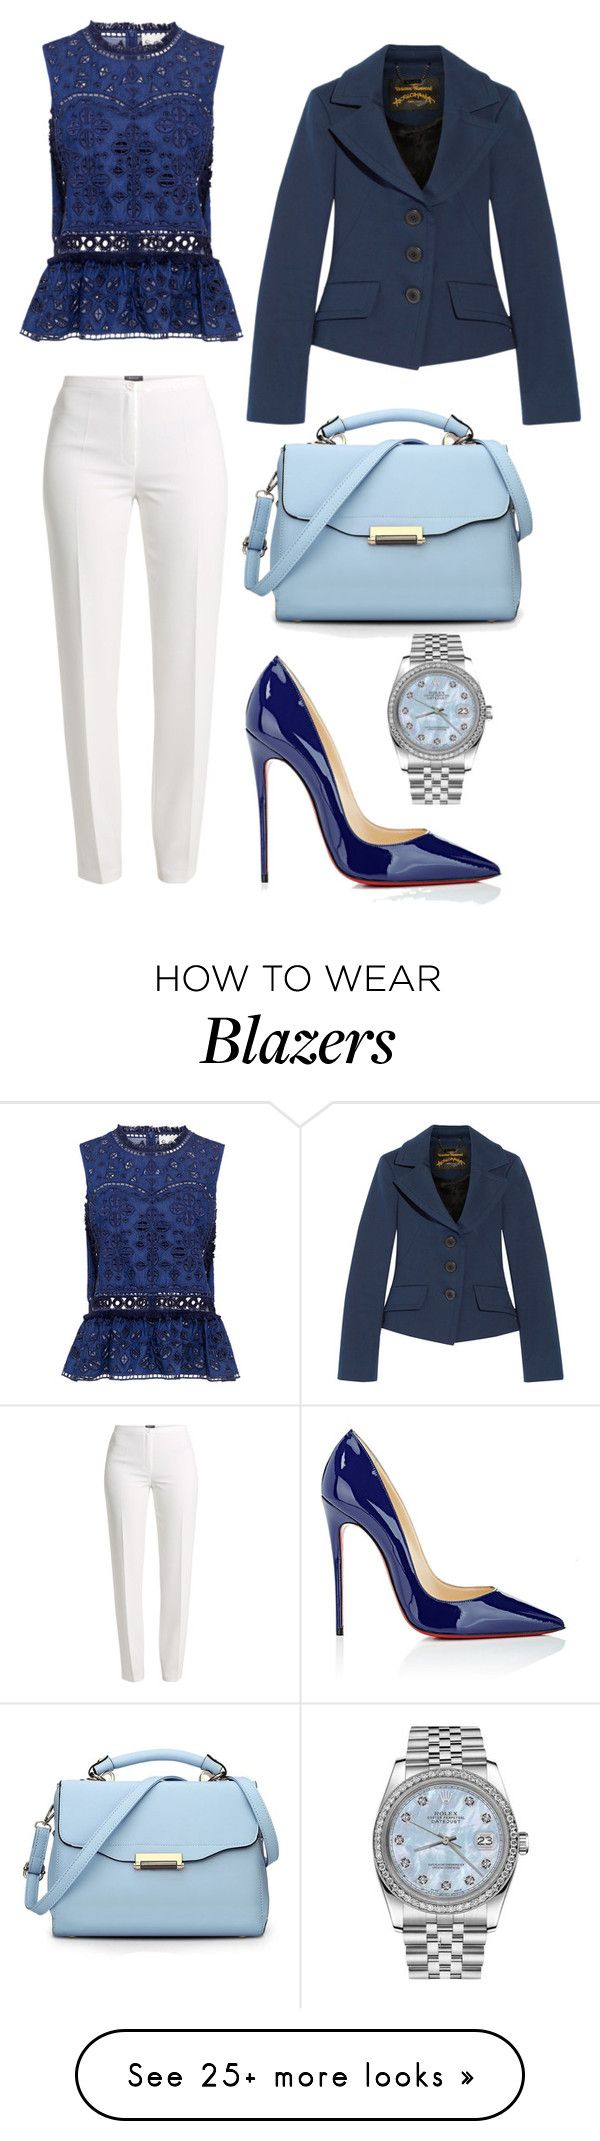 """""""Untitled #326"""" by rubysparks90 on Polyvore featuring Sea, New York, Basler, Vivienne Westwood Anglomania, Christian Louboutin and Rolex"""